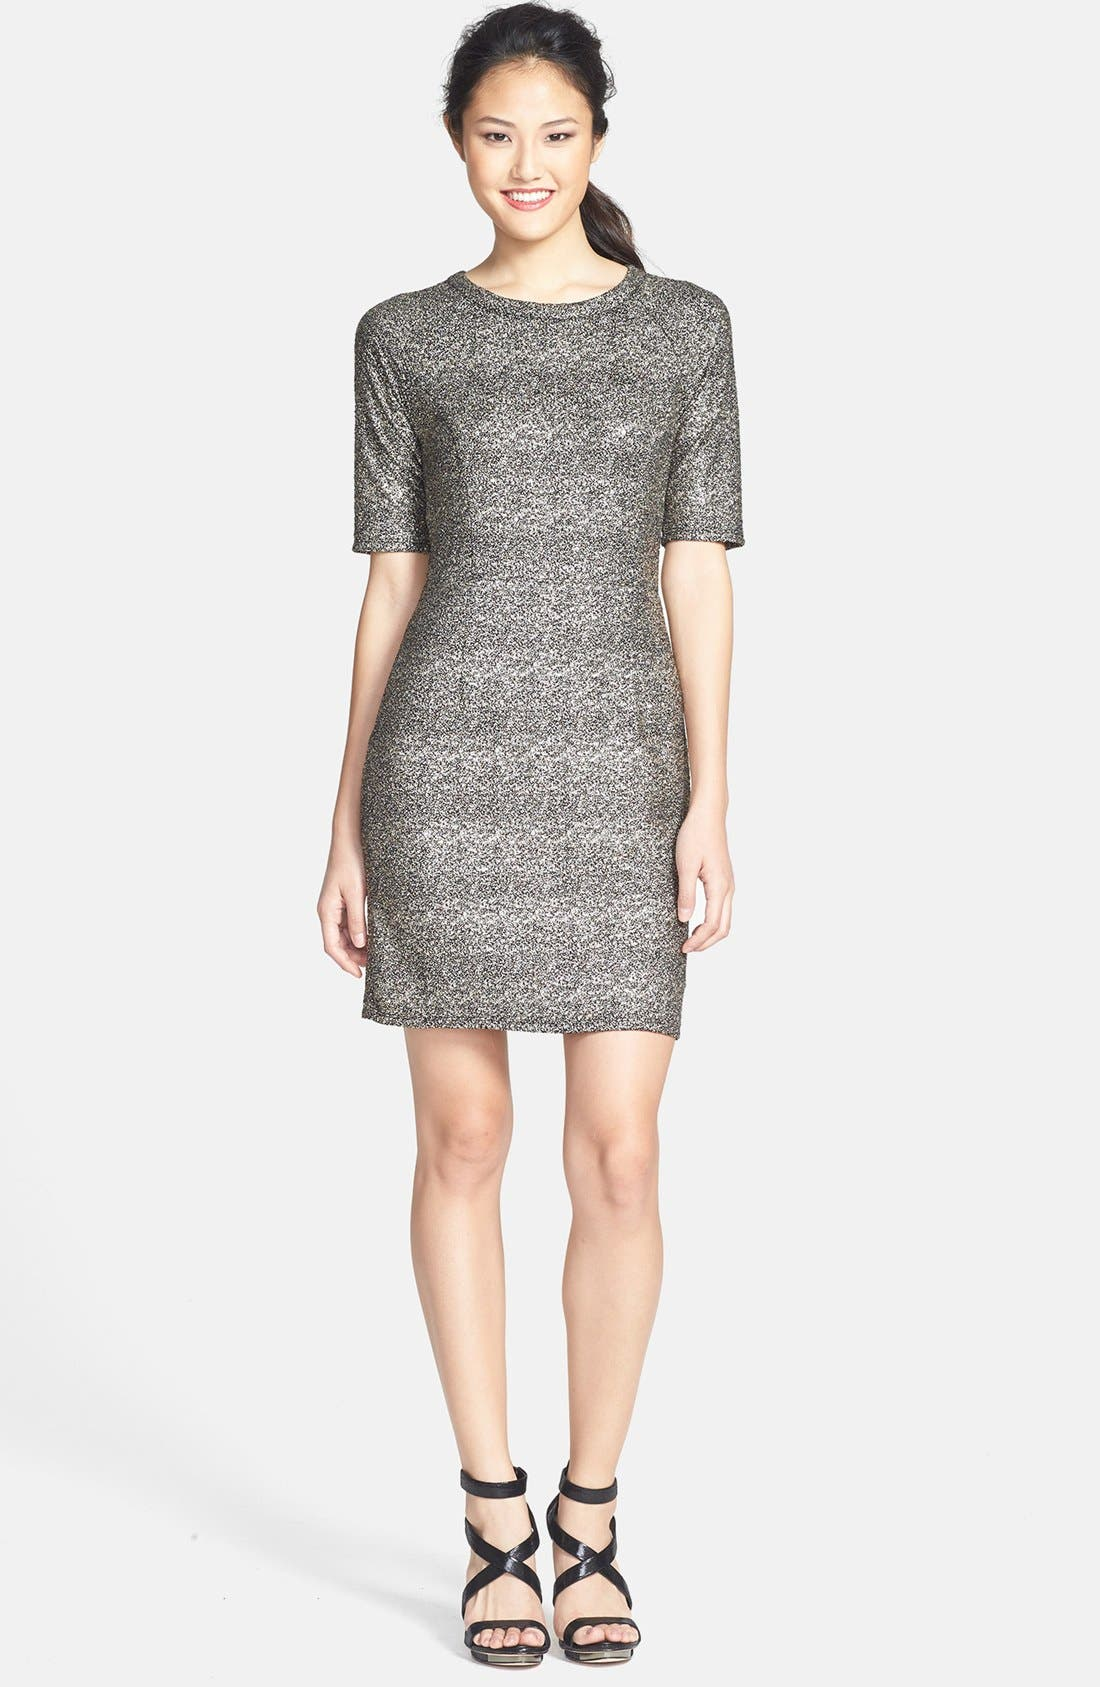 Alternate Image 1 Selected - Collective Concepts Metallic Sheath Dress